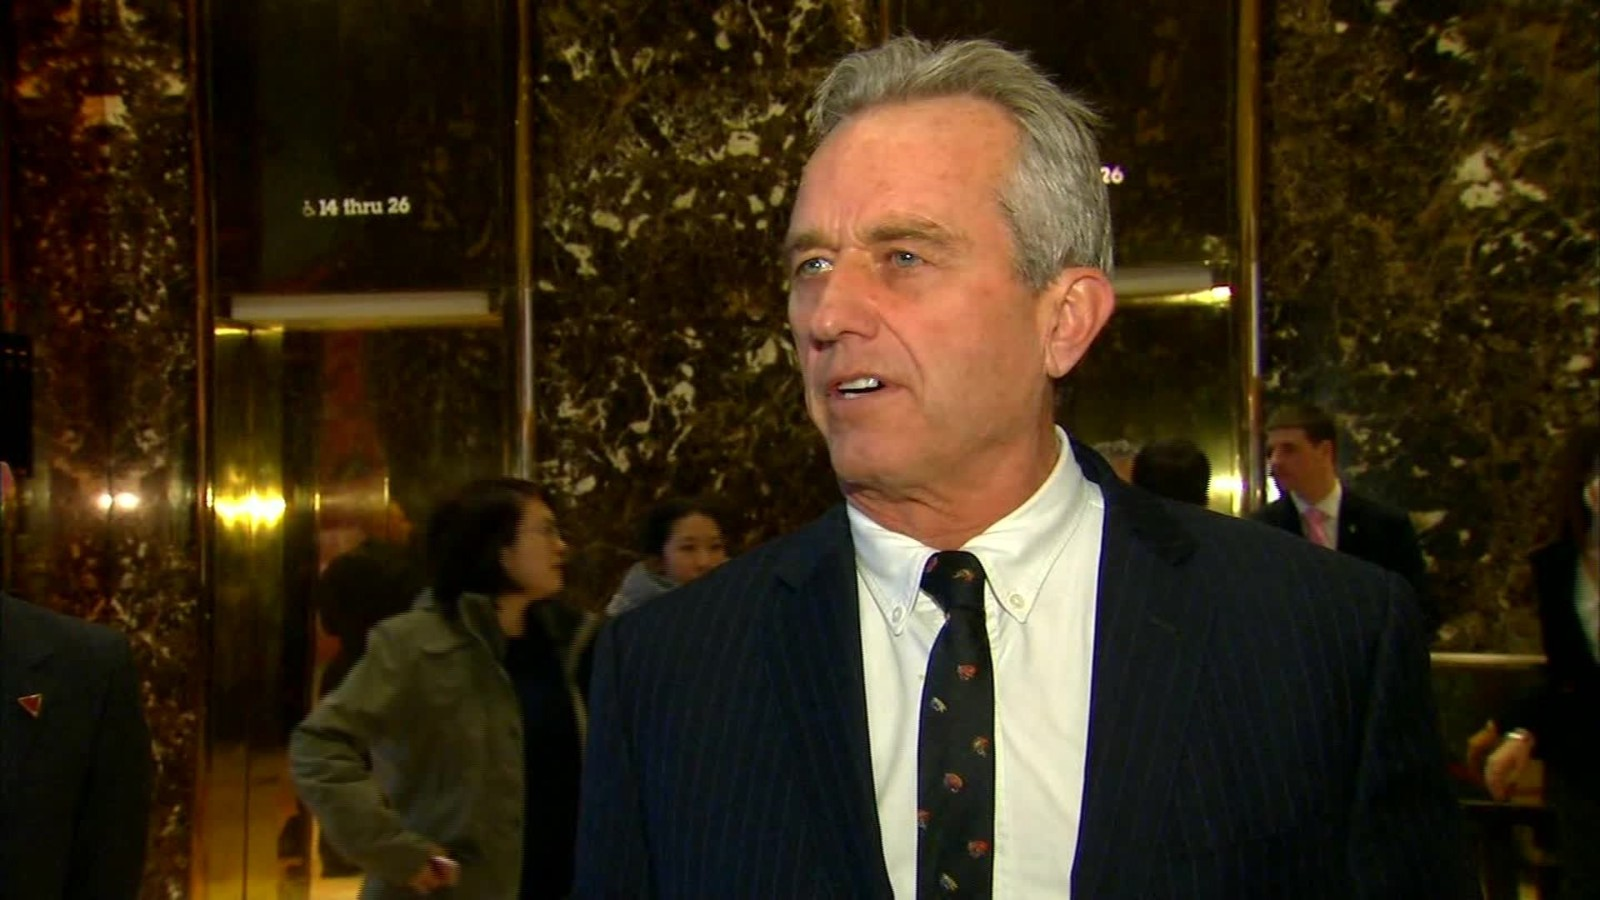 Trump Meets With Vaccine Skeptic >> Trump Team Denies Skeptic Robert F Kennedy Jr Was Asked To Head